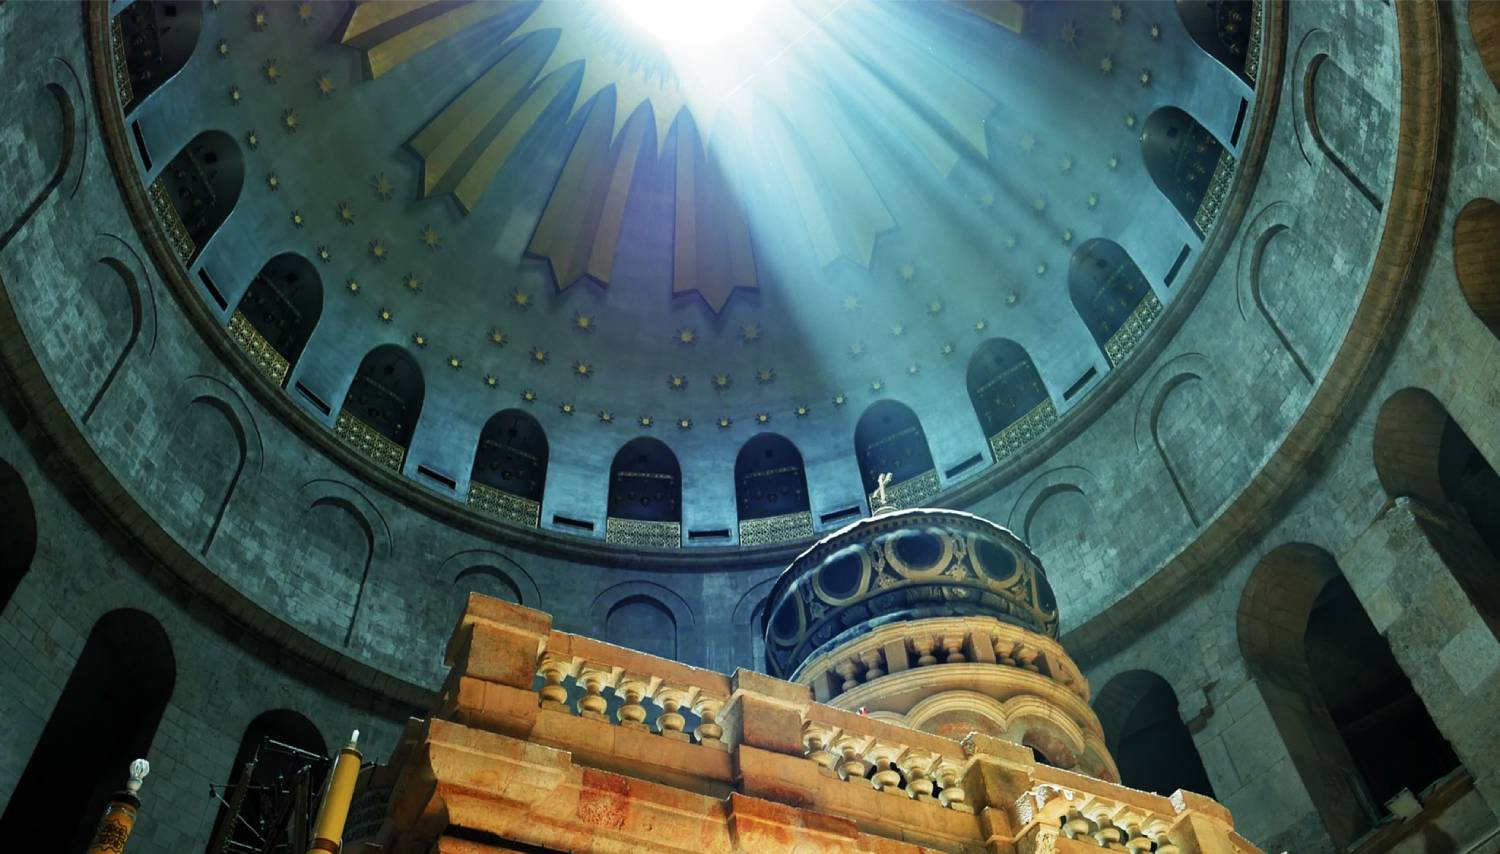 Church of the Holy Sepulchre - Things To Do In Jerusalem